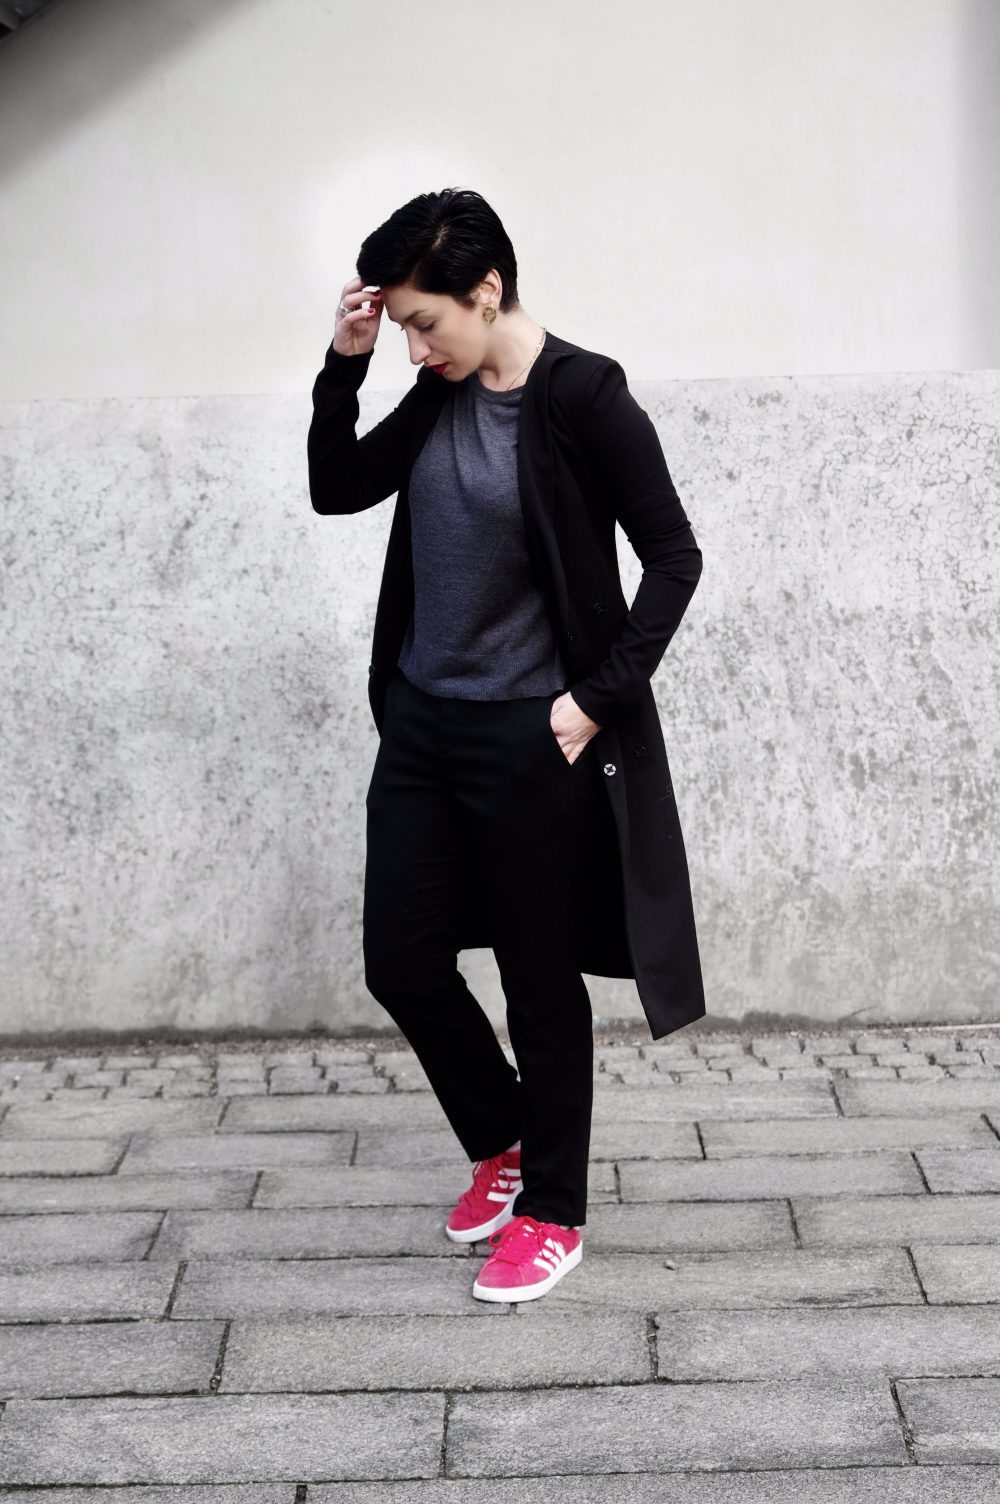 black outfit, red sneakers, adidas gazelle sneakers, minimal outfit, boysih look copy